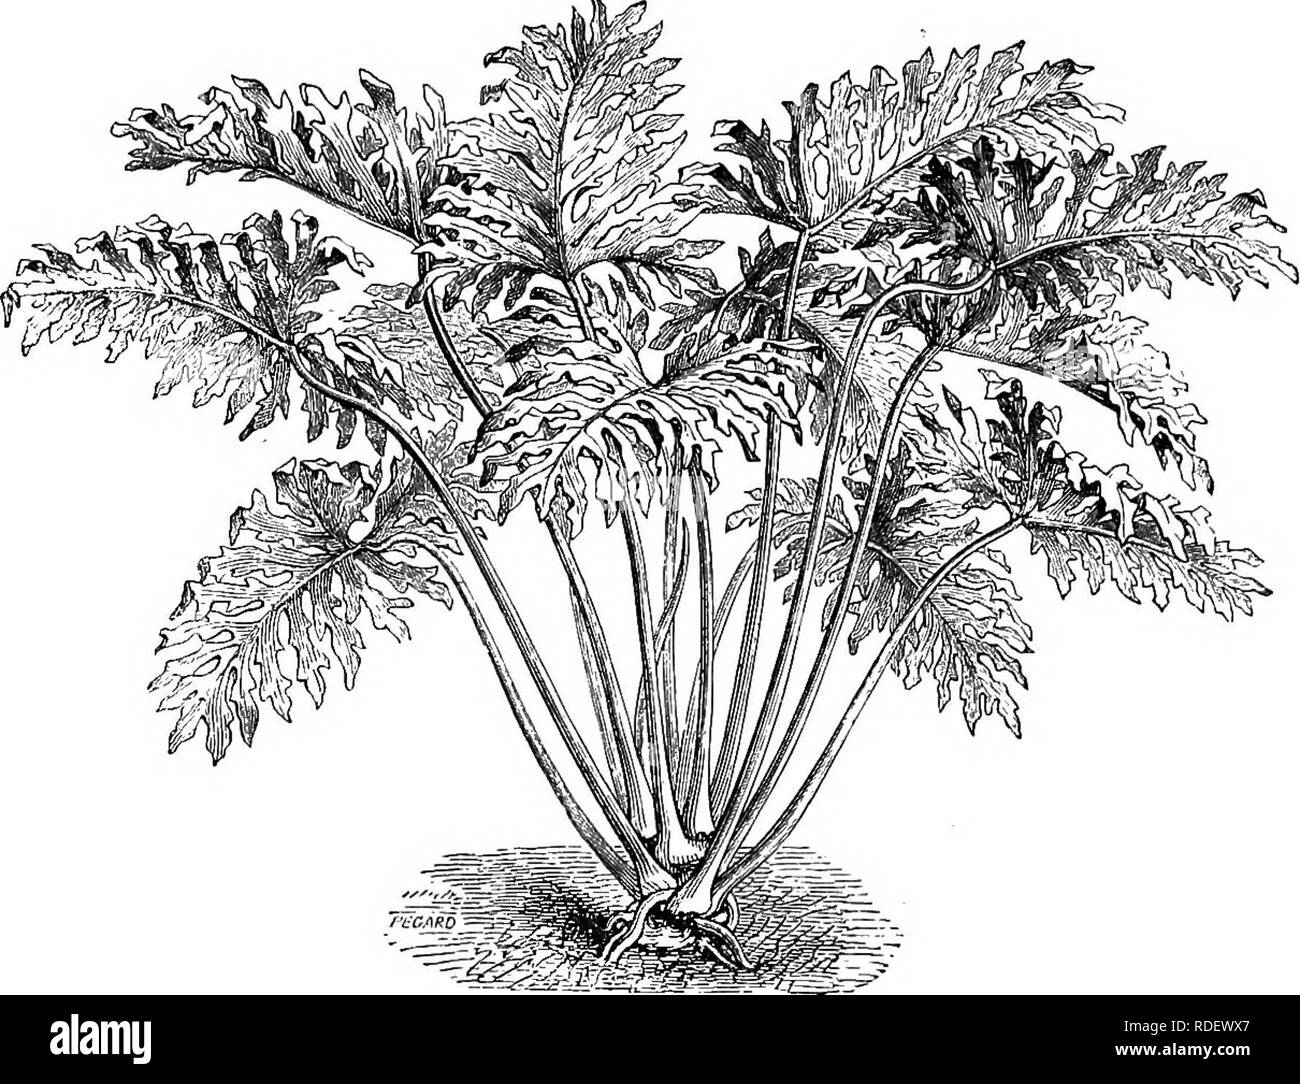 . The book of choice ferns : for the garden, conservatory, and stove : describing and giving explicit cultural directions for the best and most striking ferns and selaginellas in cultivation. Illustrated with coloured plates and numerous wood engravings, specially prepared for this work . Ferns; Ferns. MmmMMim© f) A PRACTICAL ENCYCLOPEDIA OF HORTICULTURE, FOR AMATEURS AND PROFESSIONALS. ILLUSTRATED WITH 2440 ENGRAVINGS.. Curator of the Royal Botanic Gardens^ Ketv ; Assisted by Prof. Trail, M.D., Rev. P. W. Myies, B.A., P.L.S., W. WatsoJt, J. Garrett, and other Specialists. In 4 Vols., large po - Stock Image